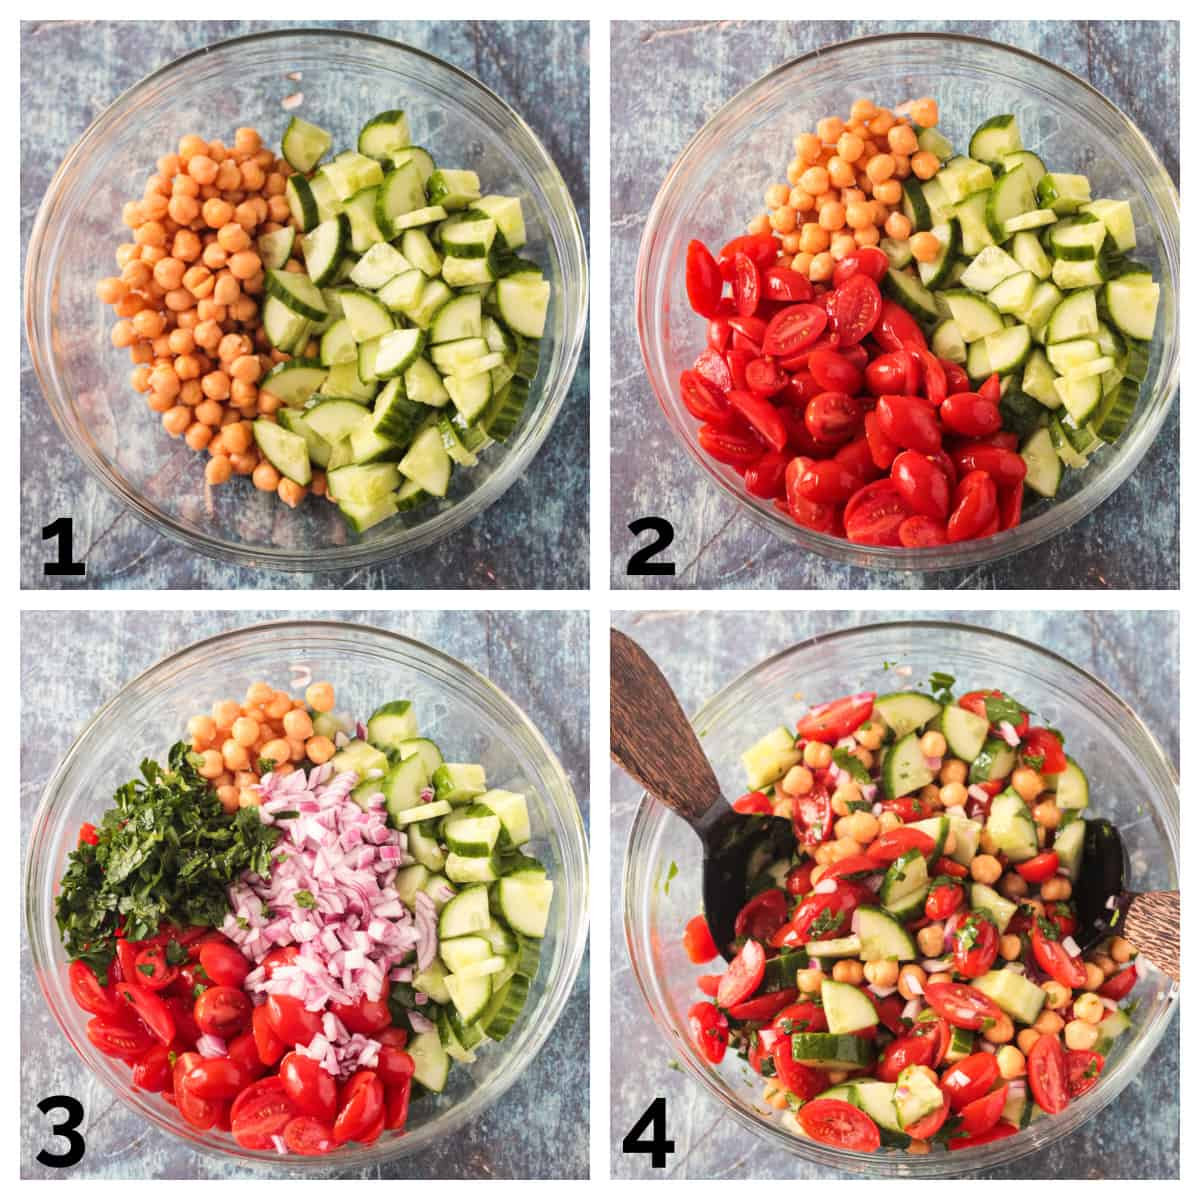 4 photo collage of adding the chopped veggies to a bowl and mixing.